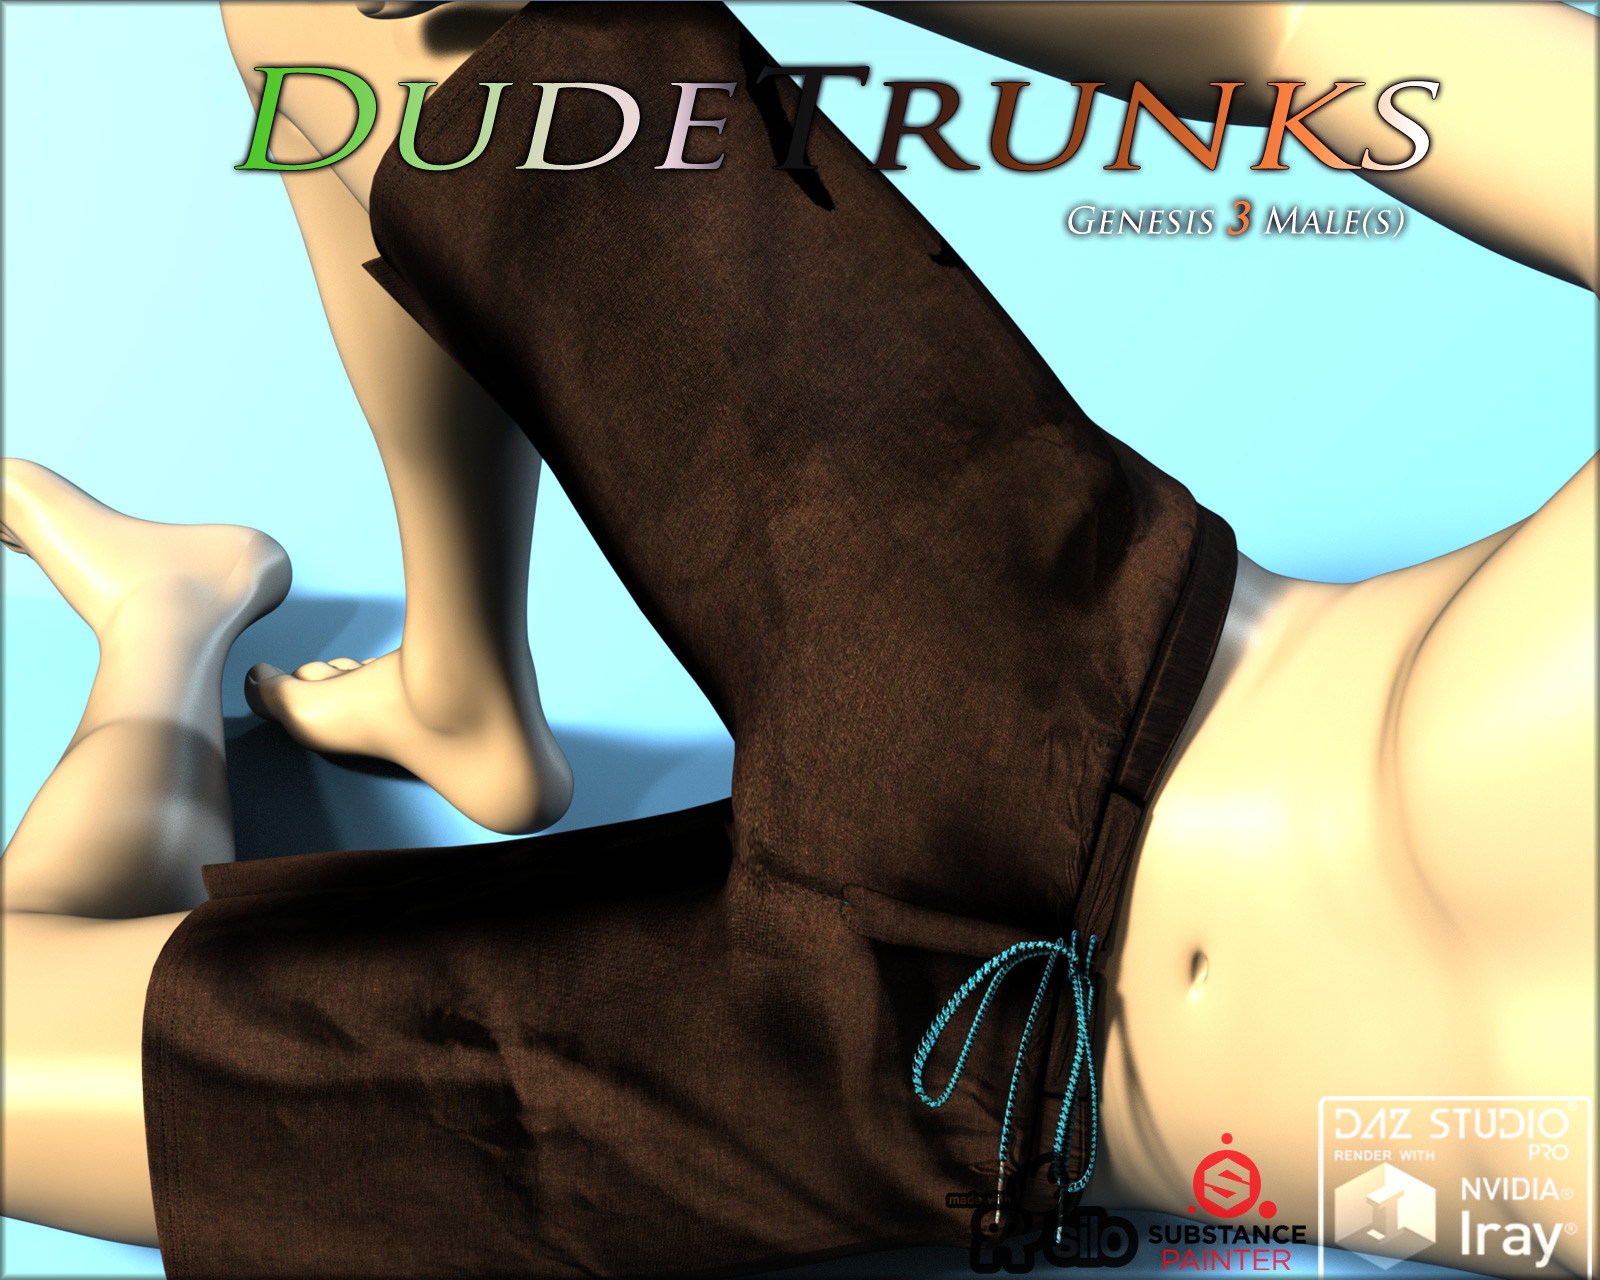 DudeTrunks for Genesis 3 Males